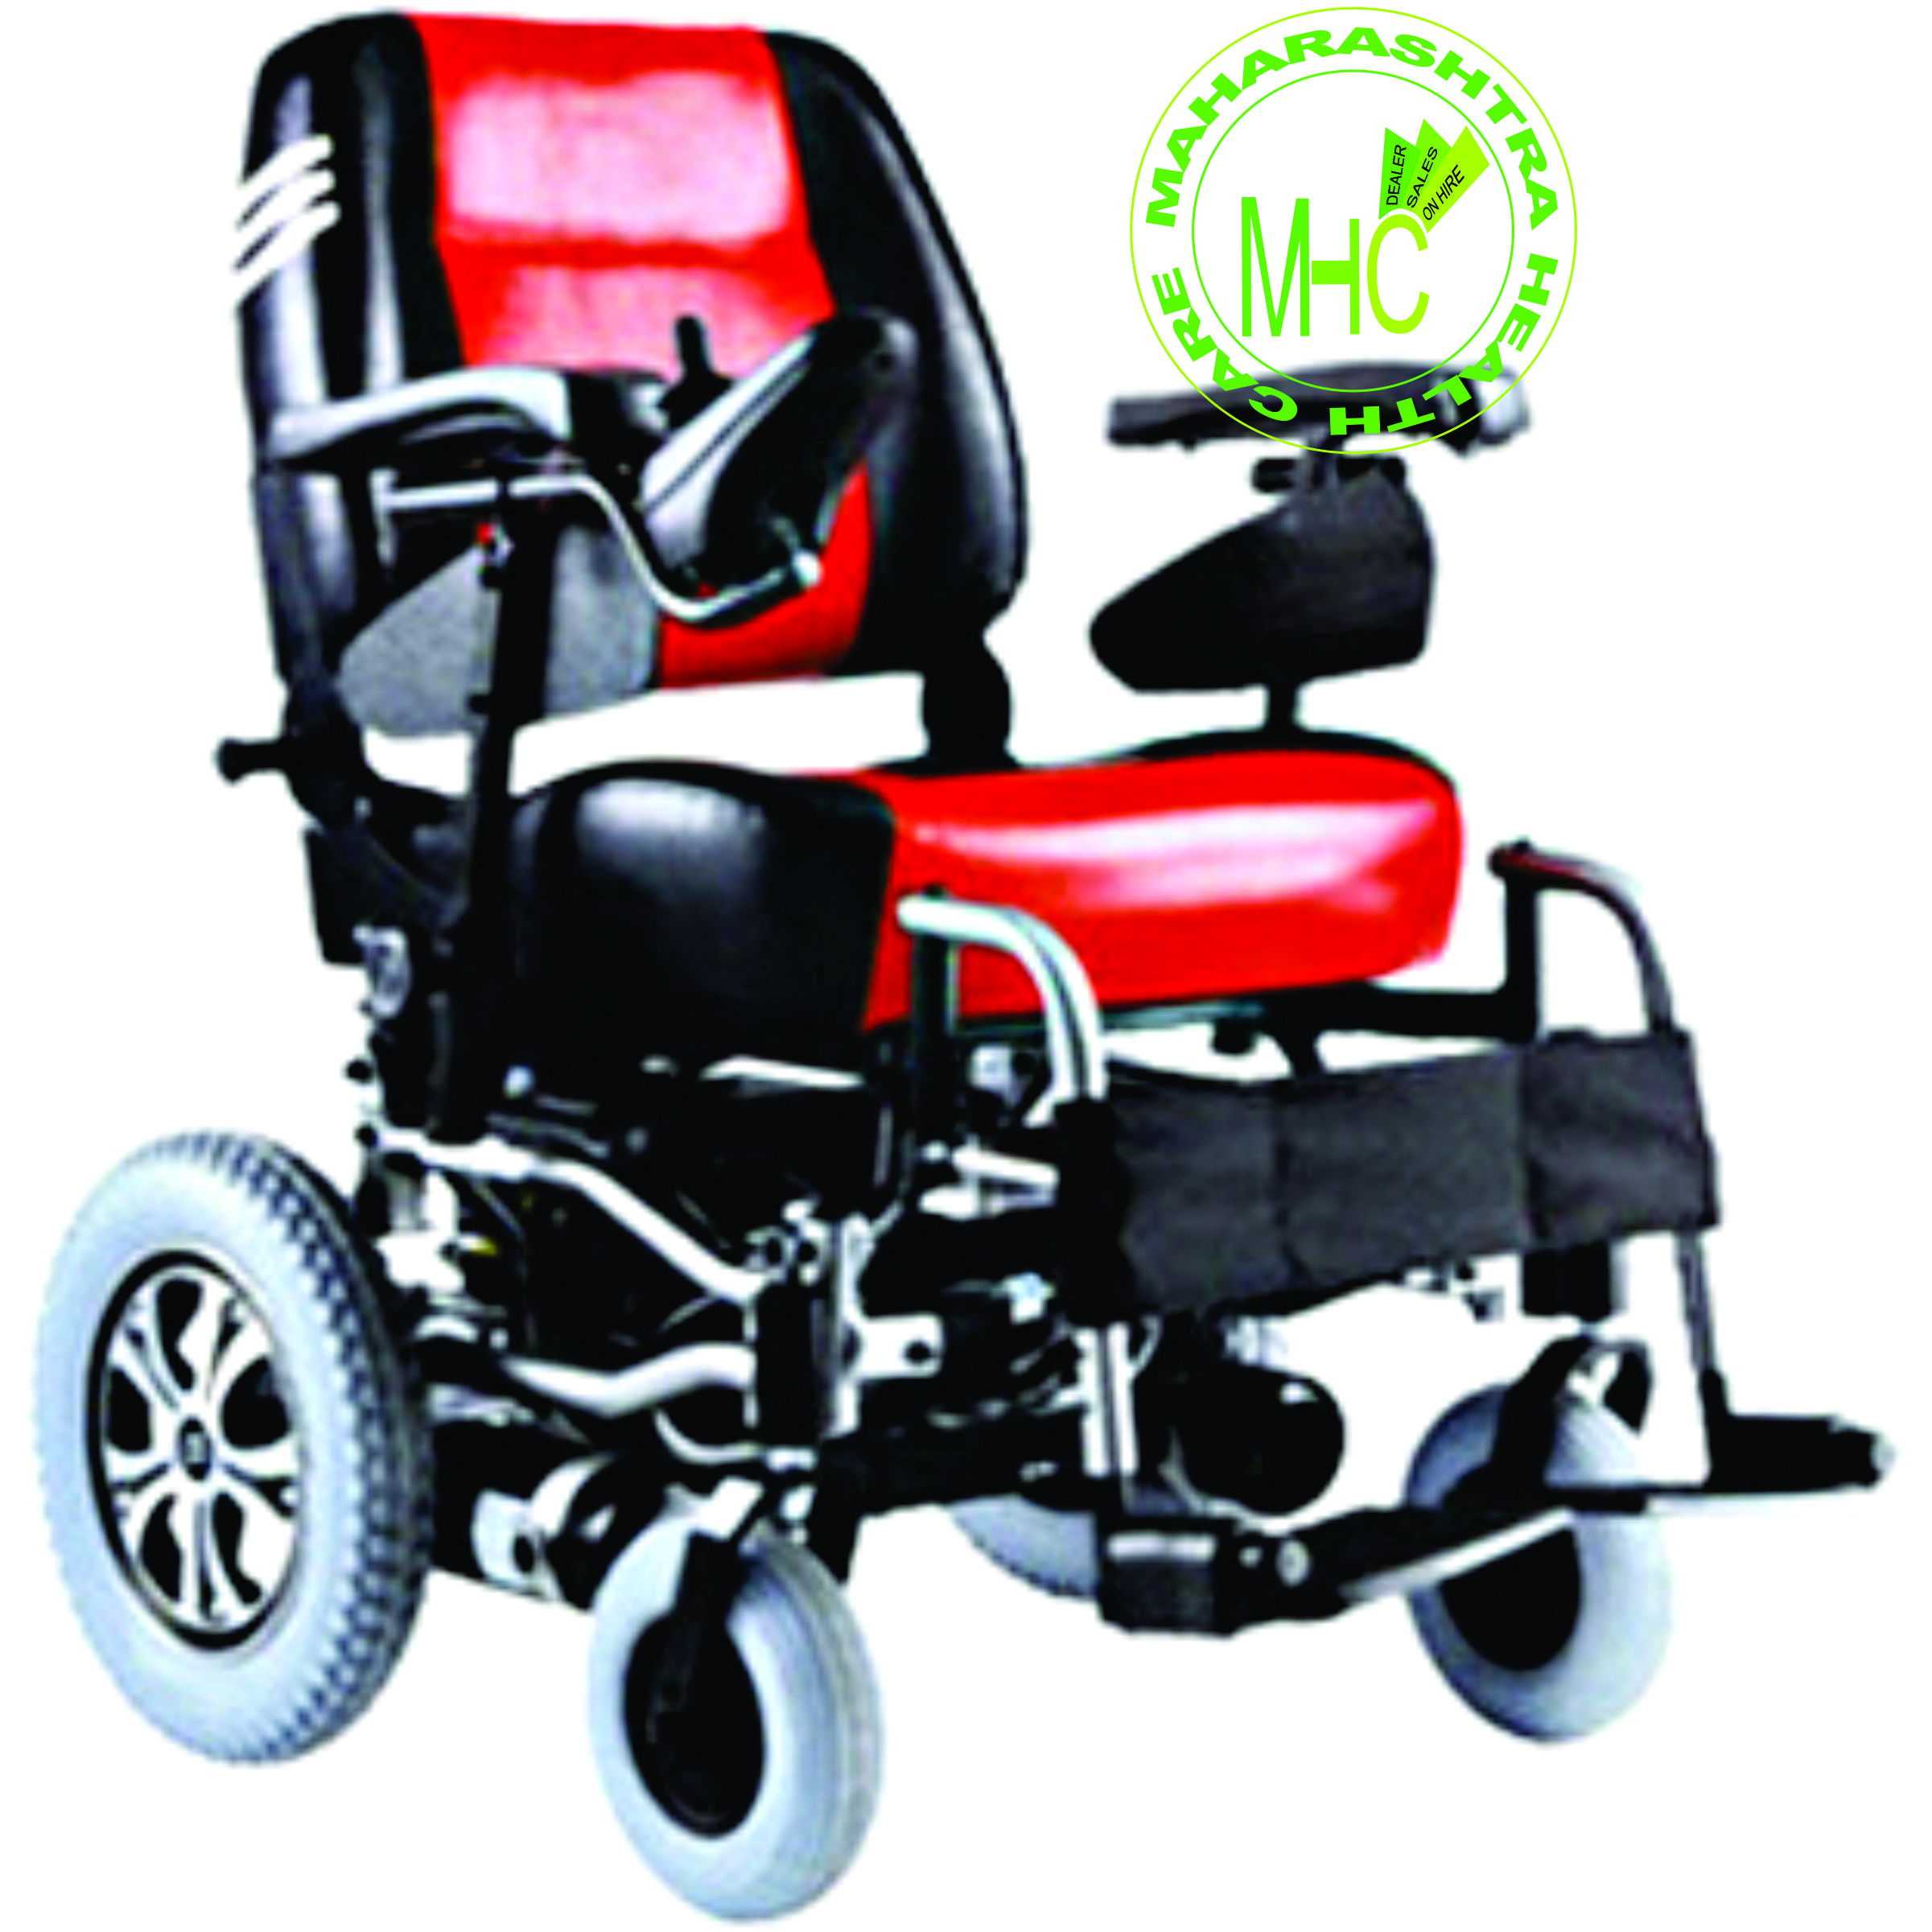 Electronic Wheel Chair Our clients can avail admirable Electric